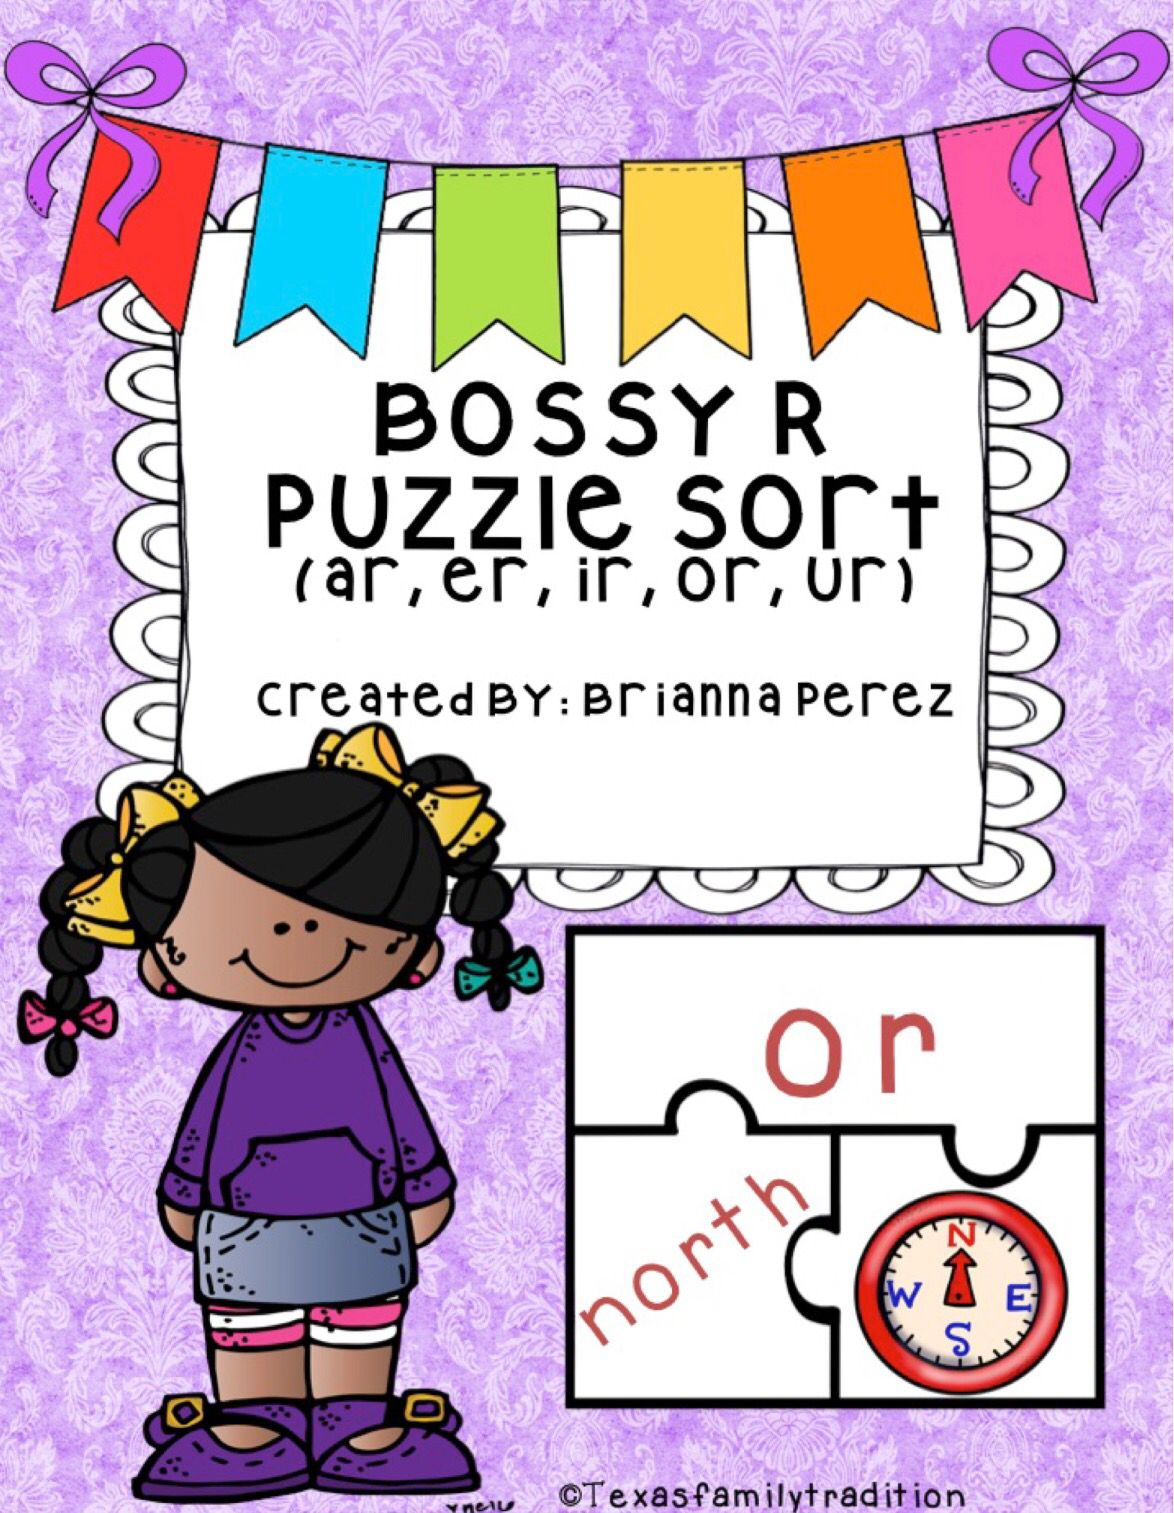 Bossy R Puzzle Sort